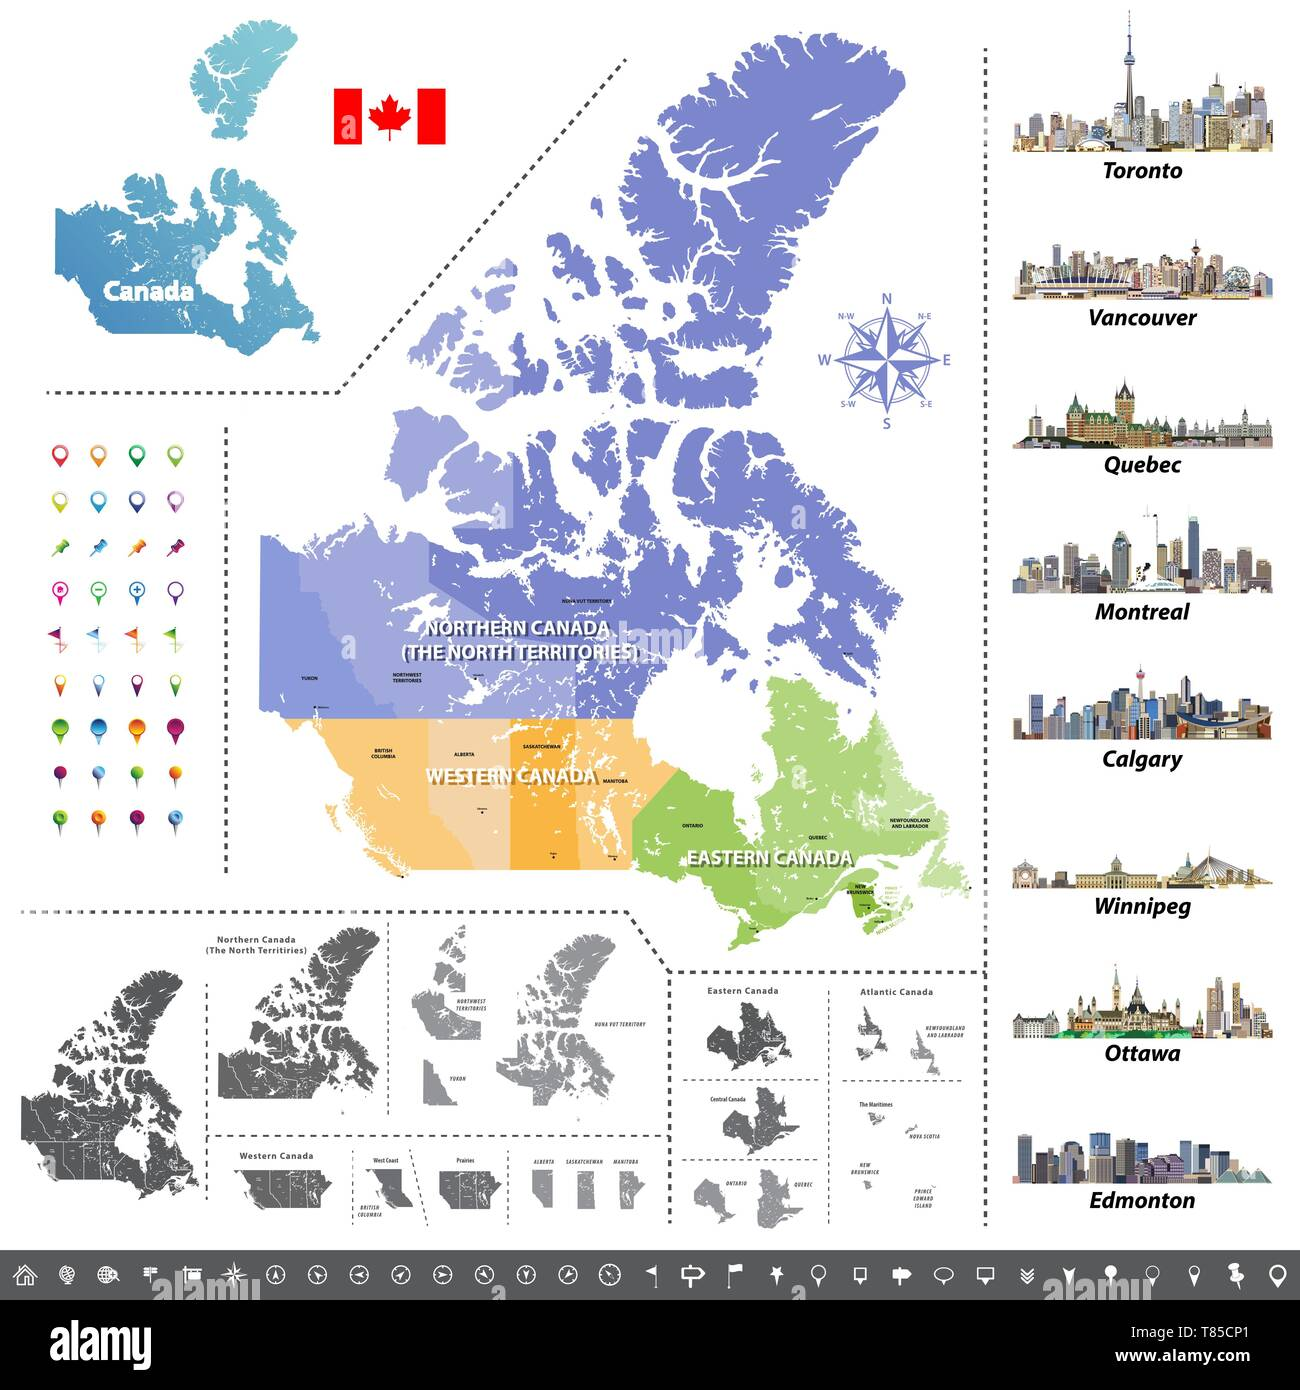 Canadian provinces and territories map colored by regions ...